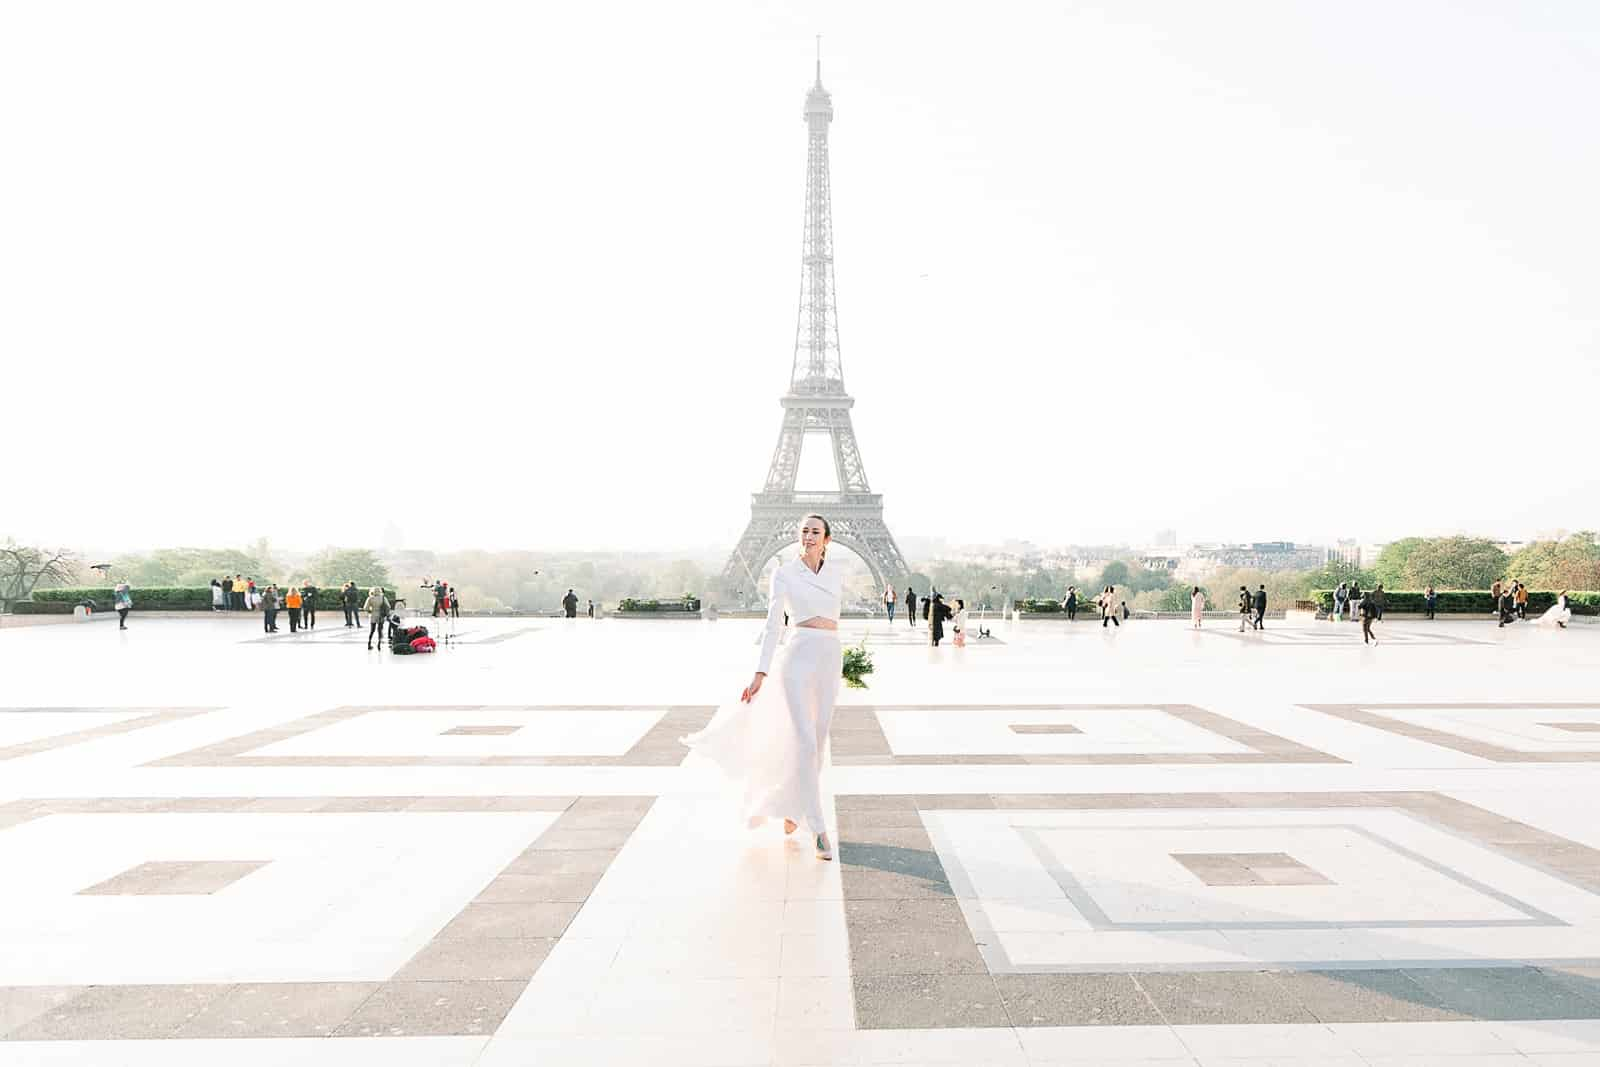 Bride in Paris, France with Eiffel Tower